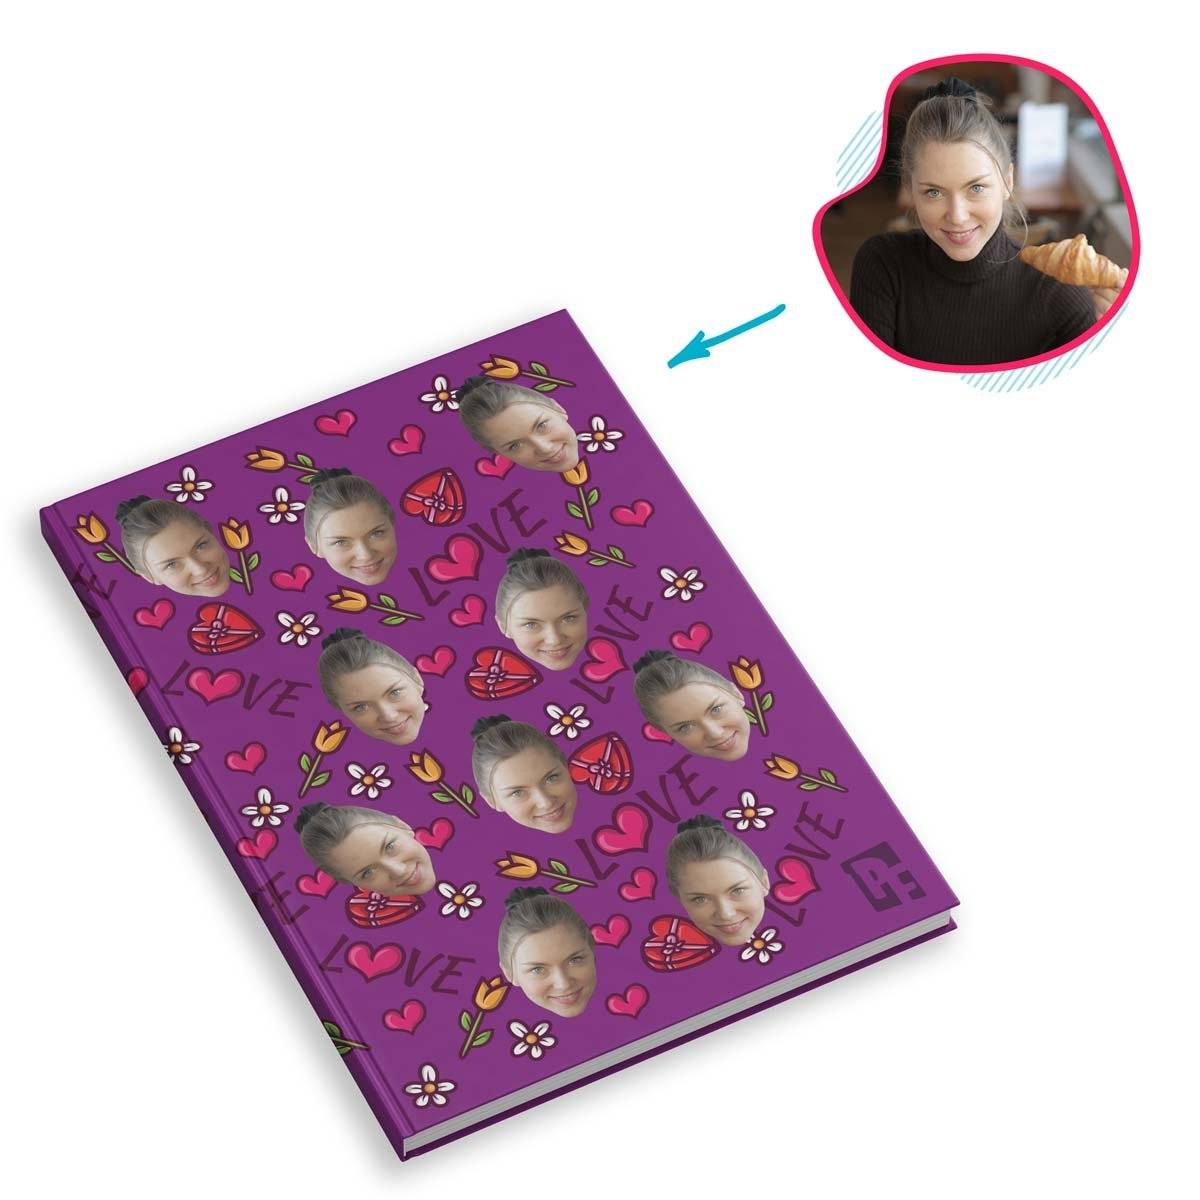 purple Hearts and Flowers Notebook personalized with photo of face printed on them